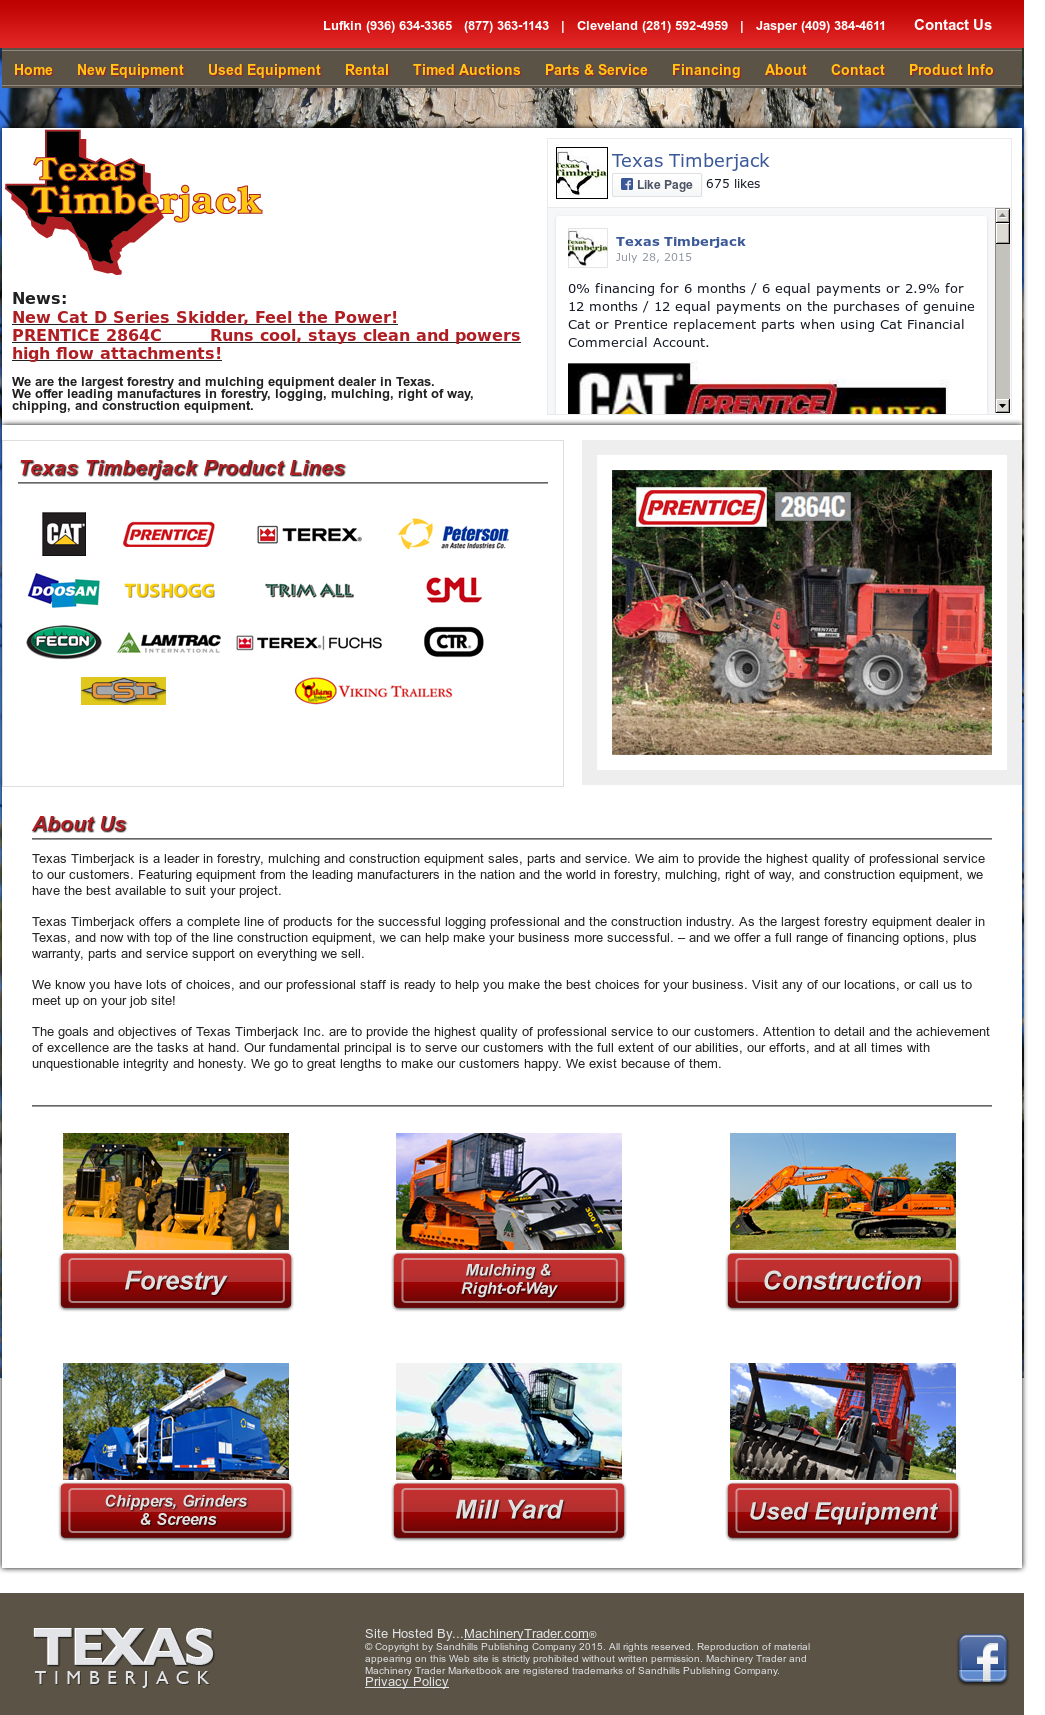 Texas Timberjack Competitors, Revenue and Employees - Owler Company